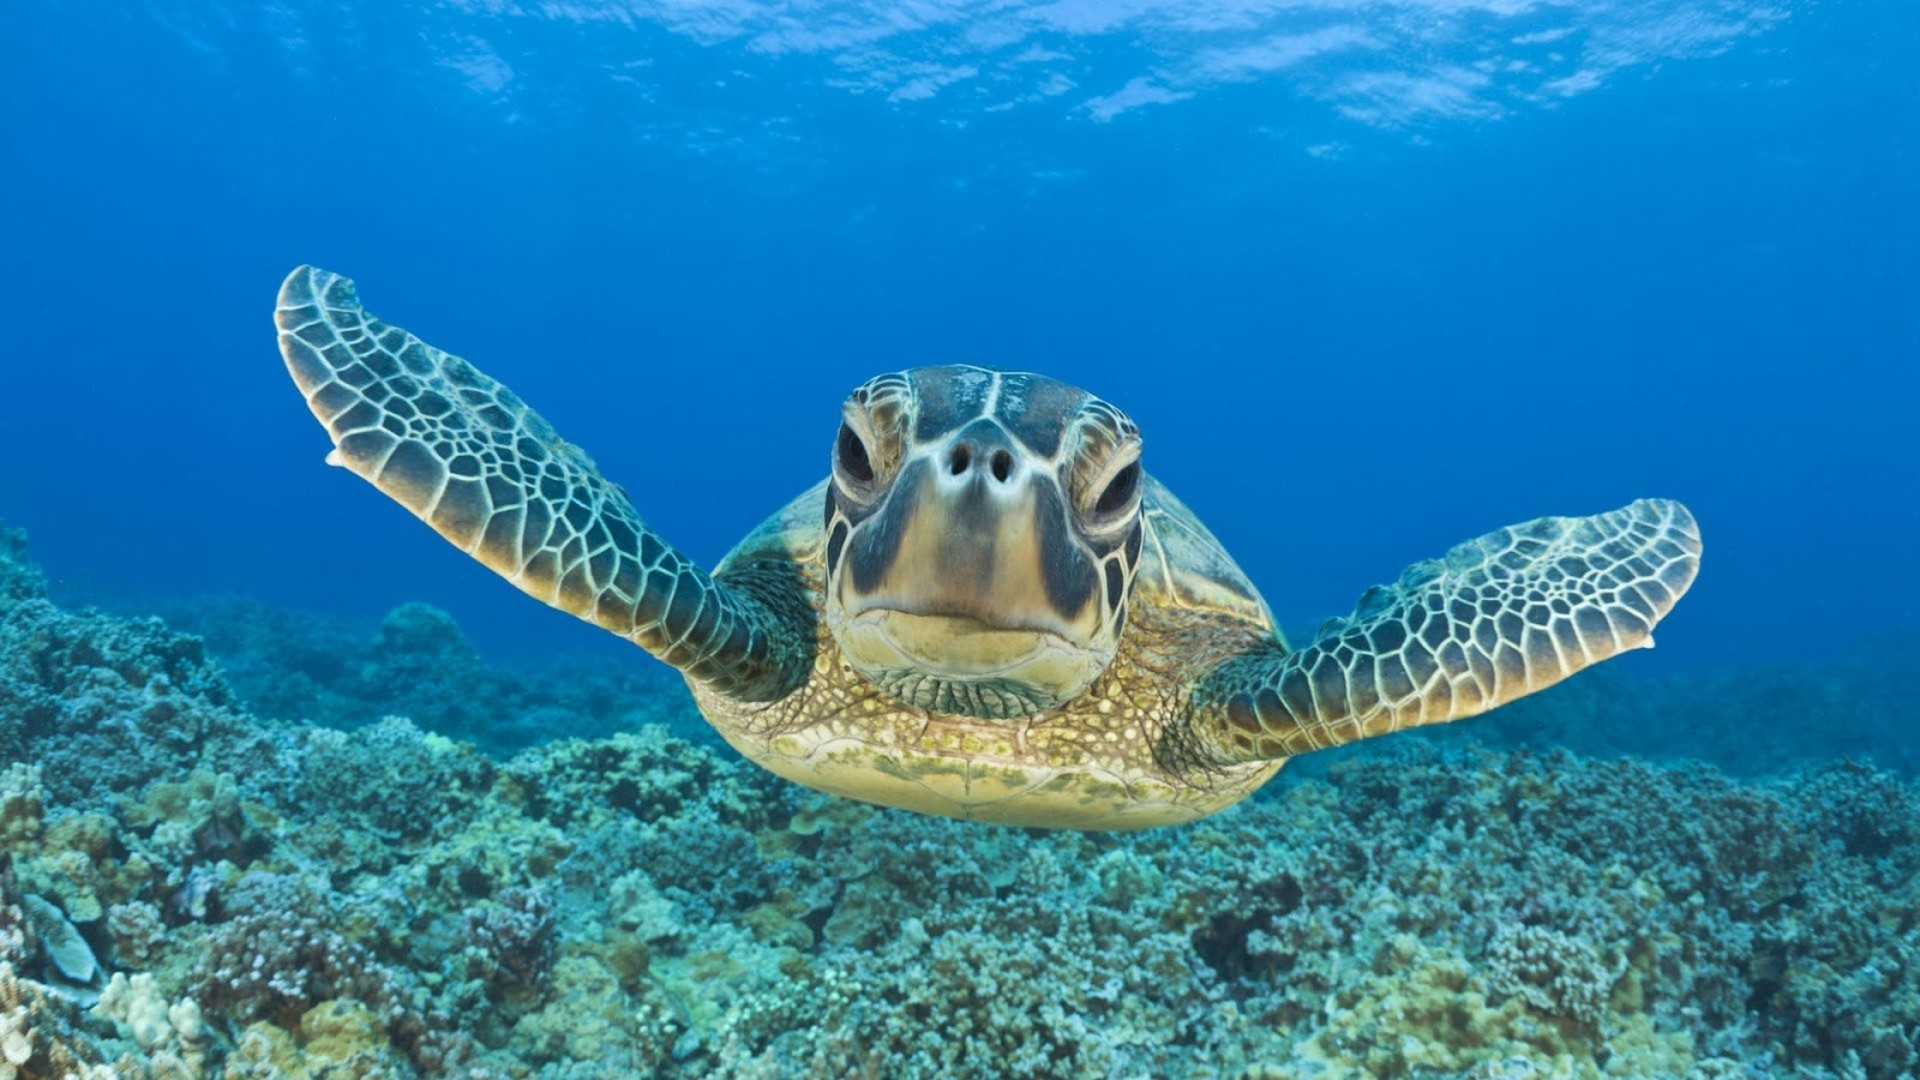 Turtle HD Animals 4k Wallpapers Images Backgrounds Photos And